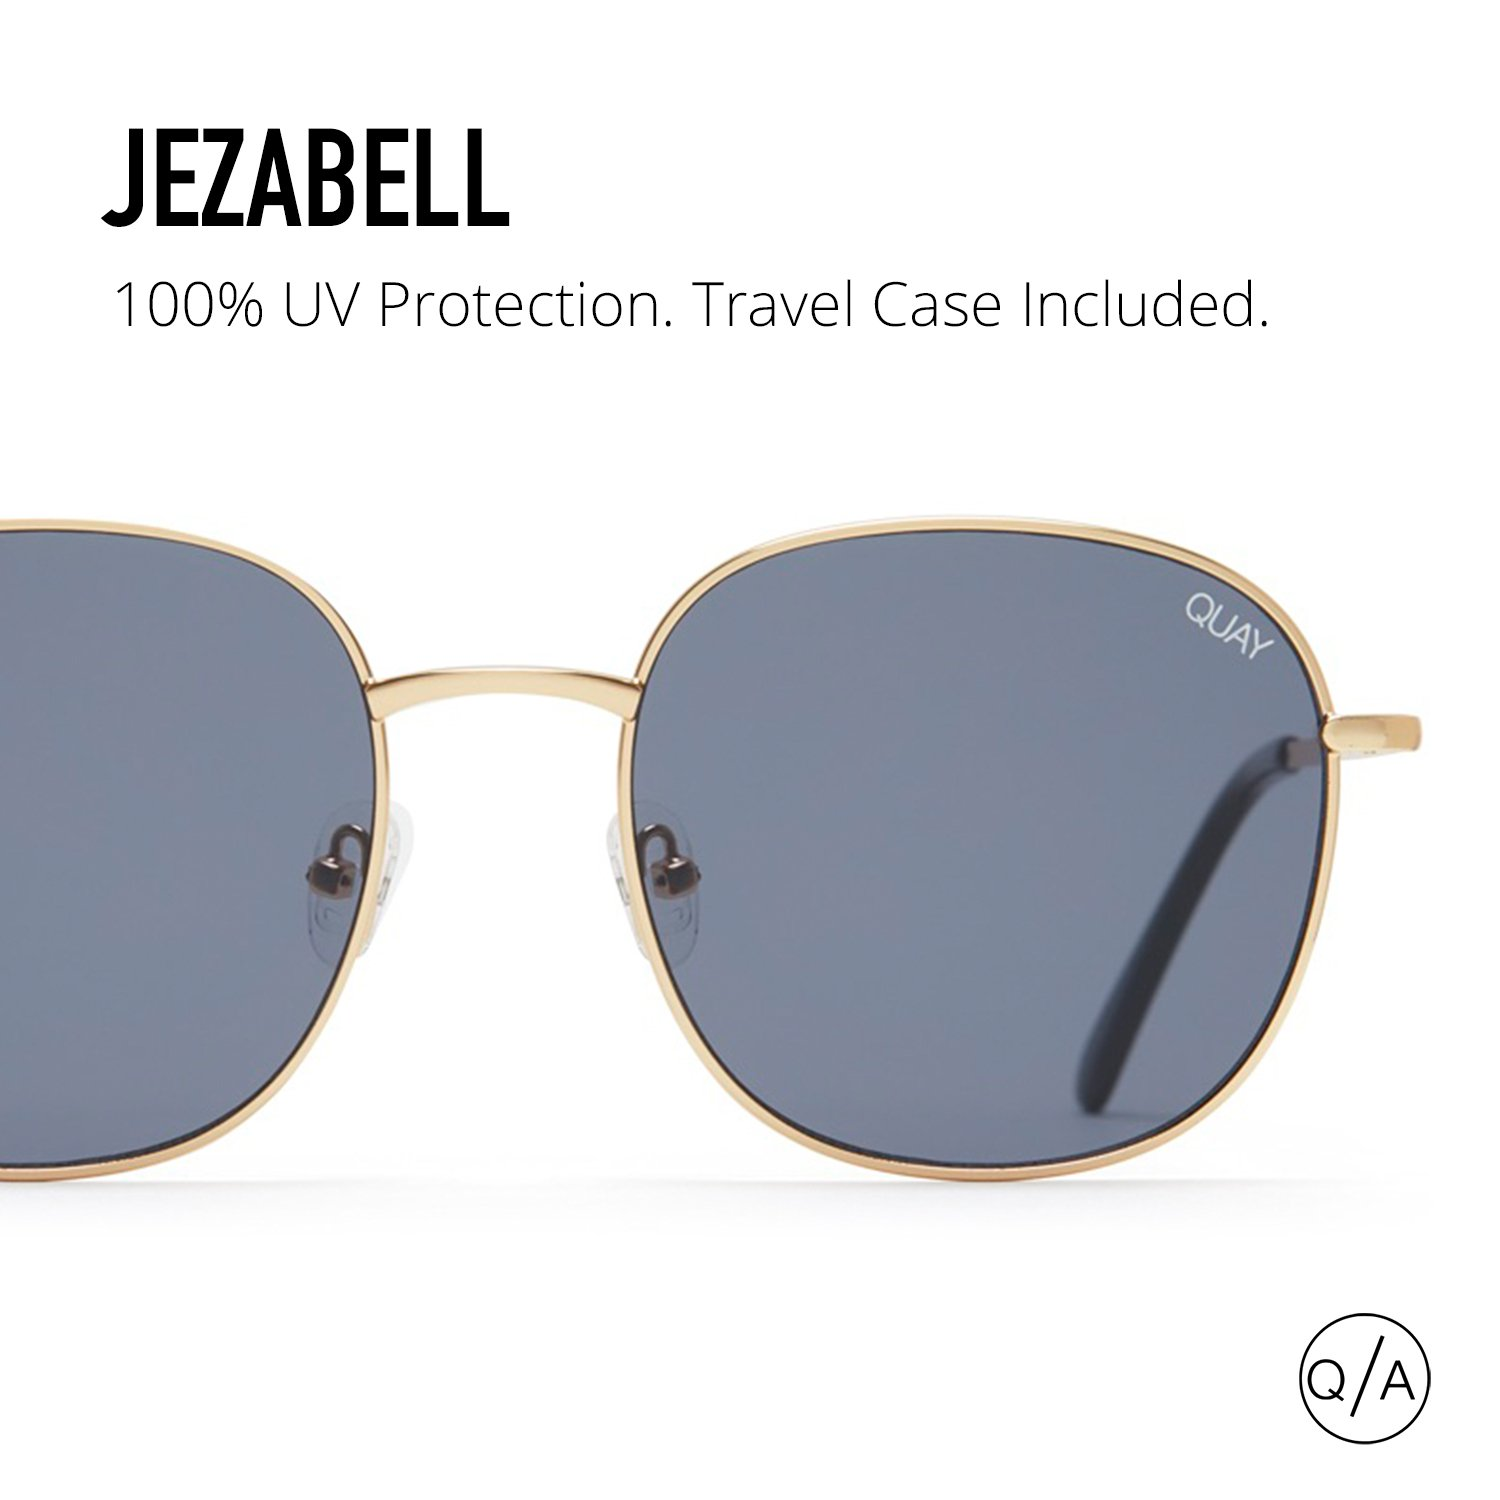 f470e4a17ea Amazon.com  Quay Australia JEZABELL Women s Sunglasses Minimal Round  Sunnies - Gold Smoke  Clothing